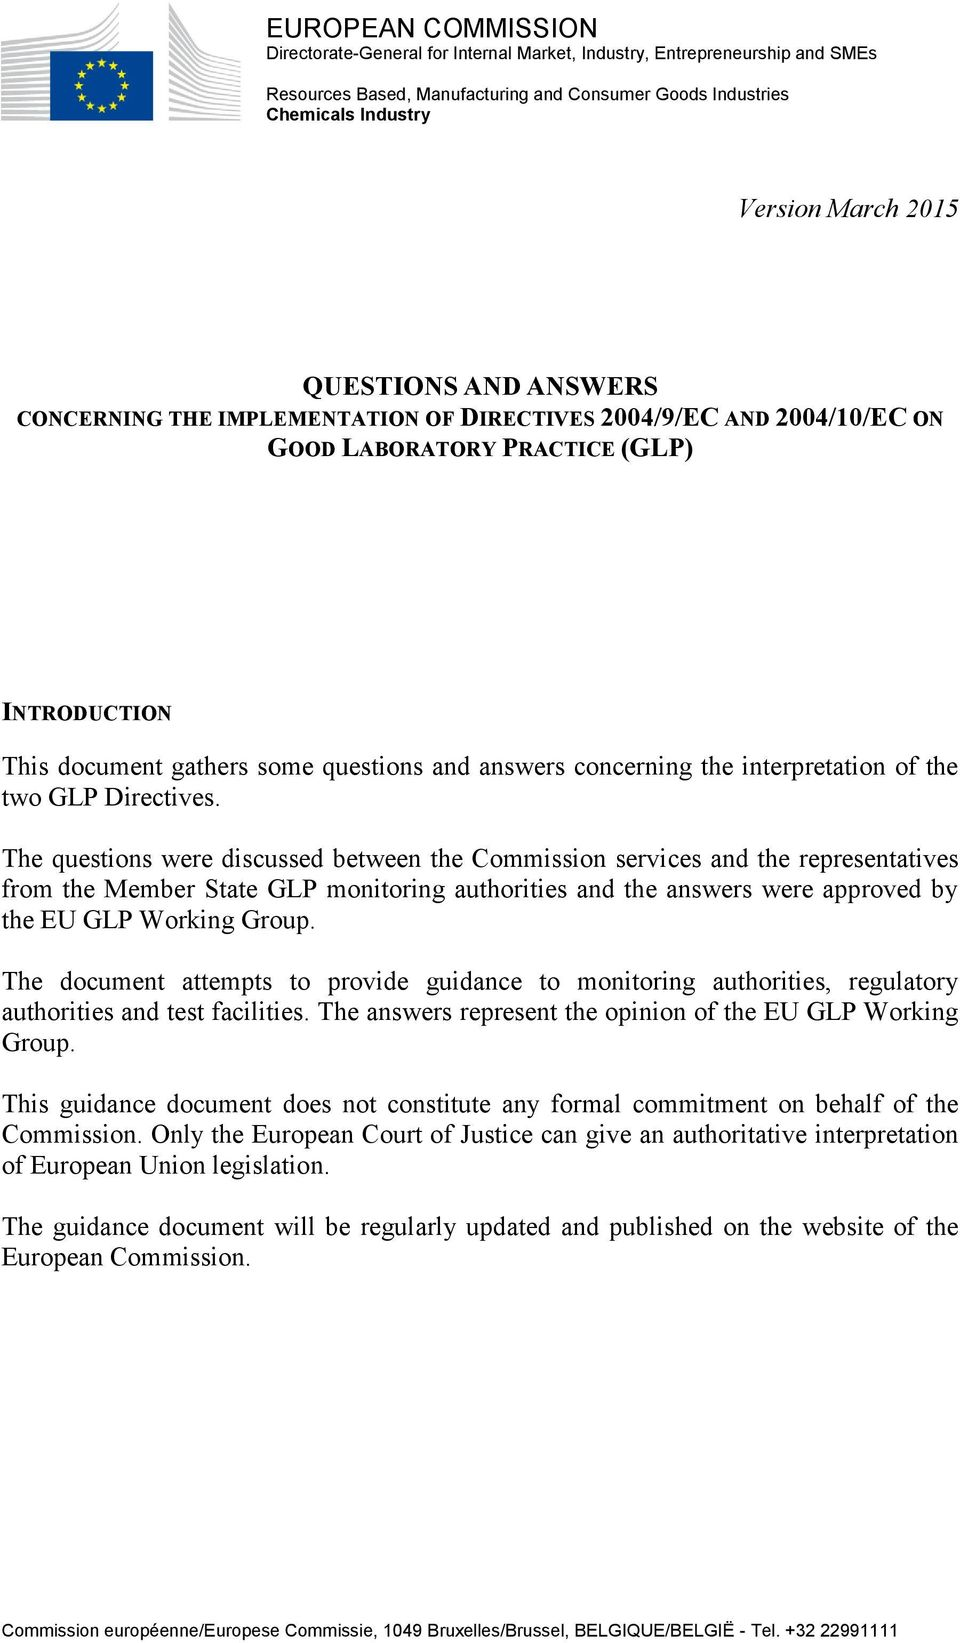 the interpretation of the two GLP Directives.